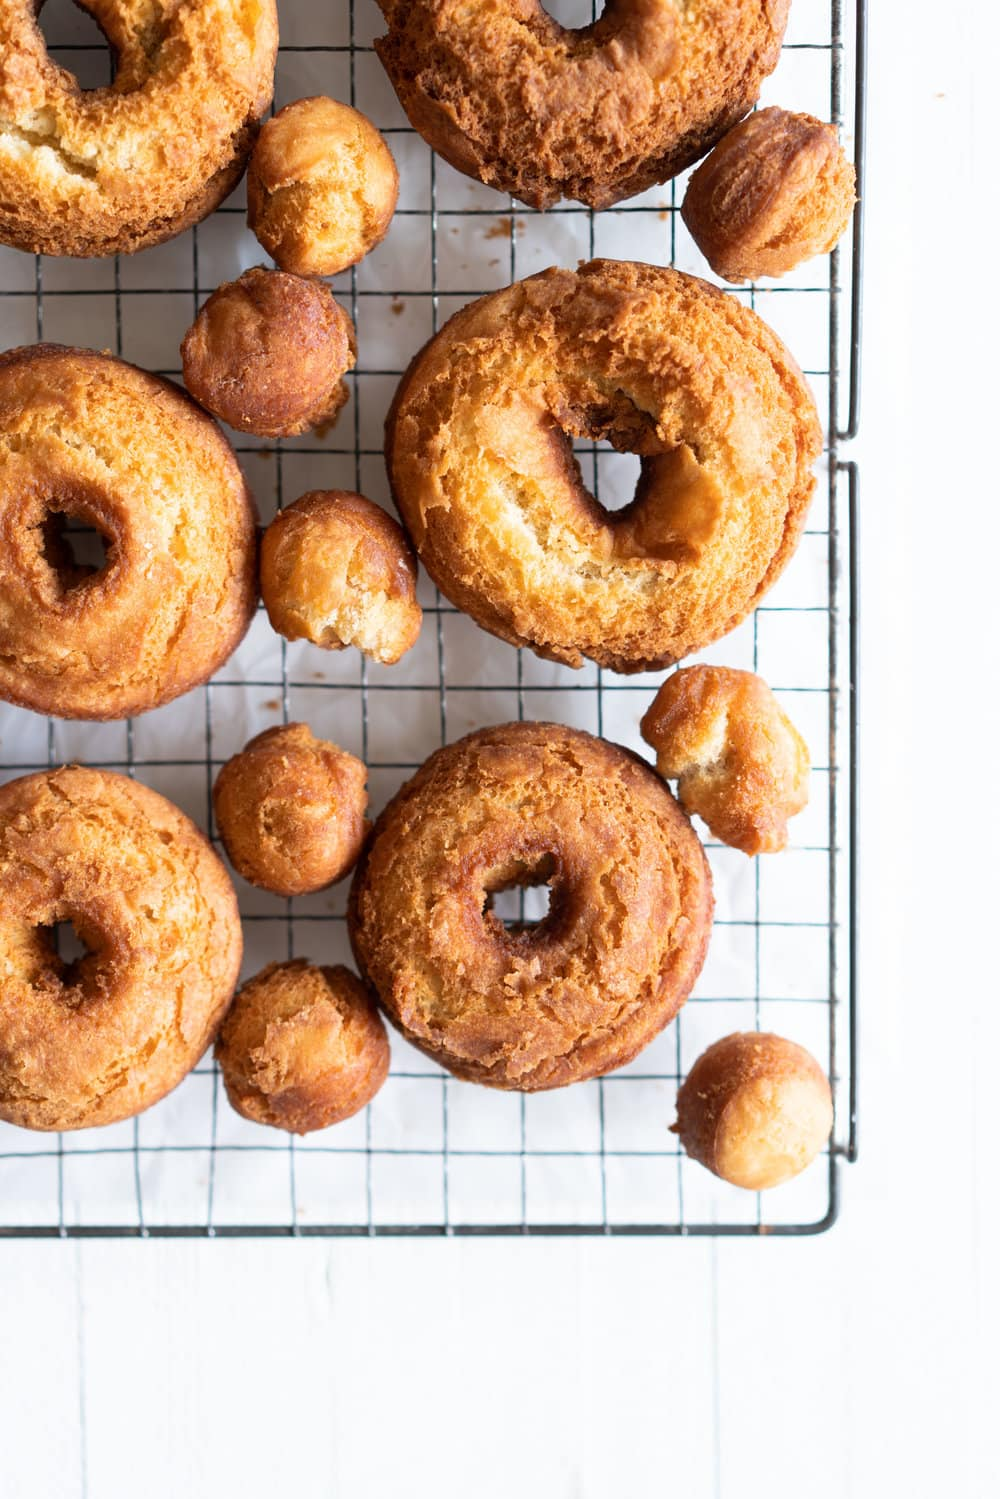 Vanilla Bean Old Fashioned Doughnuts - made as a cake doughnut rather than it's friend the yeast raised doughnut, old fashioned doughnuts are cakey and dense, fried to golden perfection, and then finished with a vanilla bean glaze. #oldfashioned #doughnuts #cakedoughnuts #cakedonut #vanillabean #staub